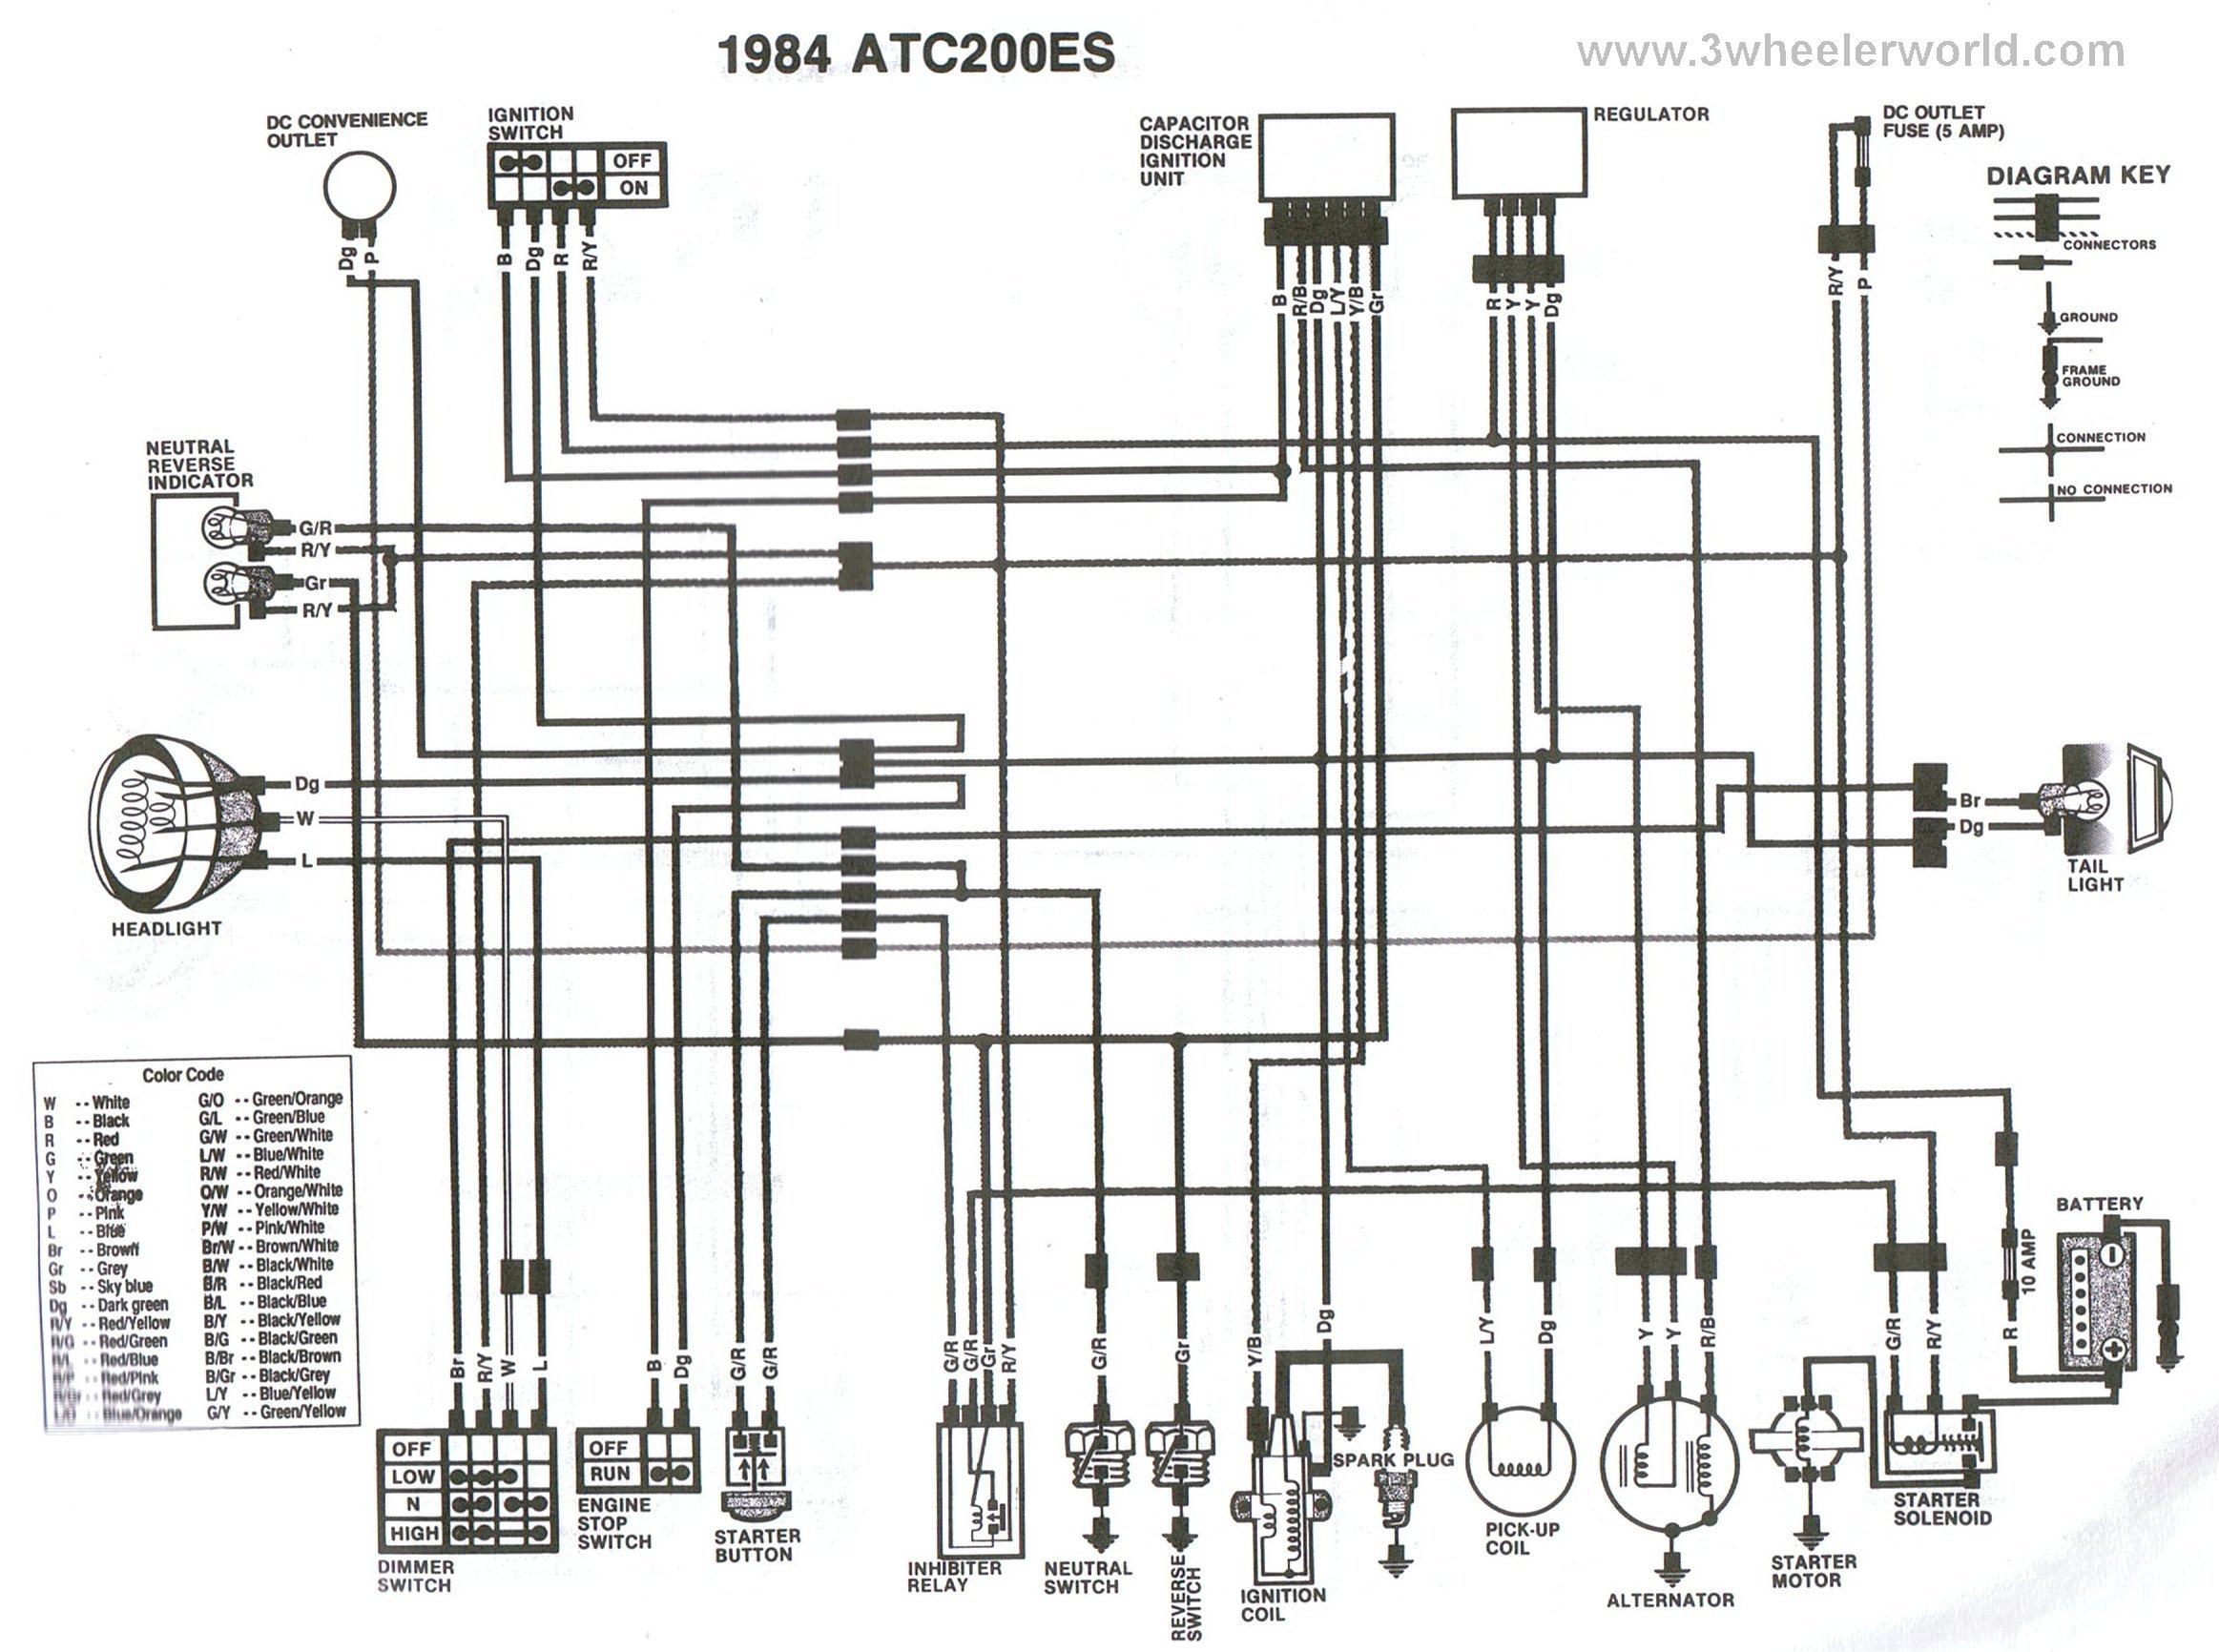 atc 200 wiring diagram atc image wiring diagram honda atc 200 wiring diagram honda image wiring on atc 200 wiring diagram